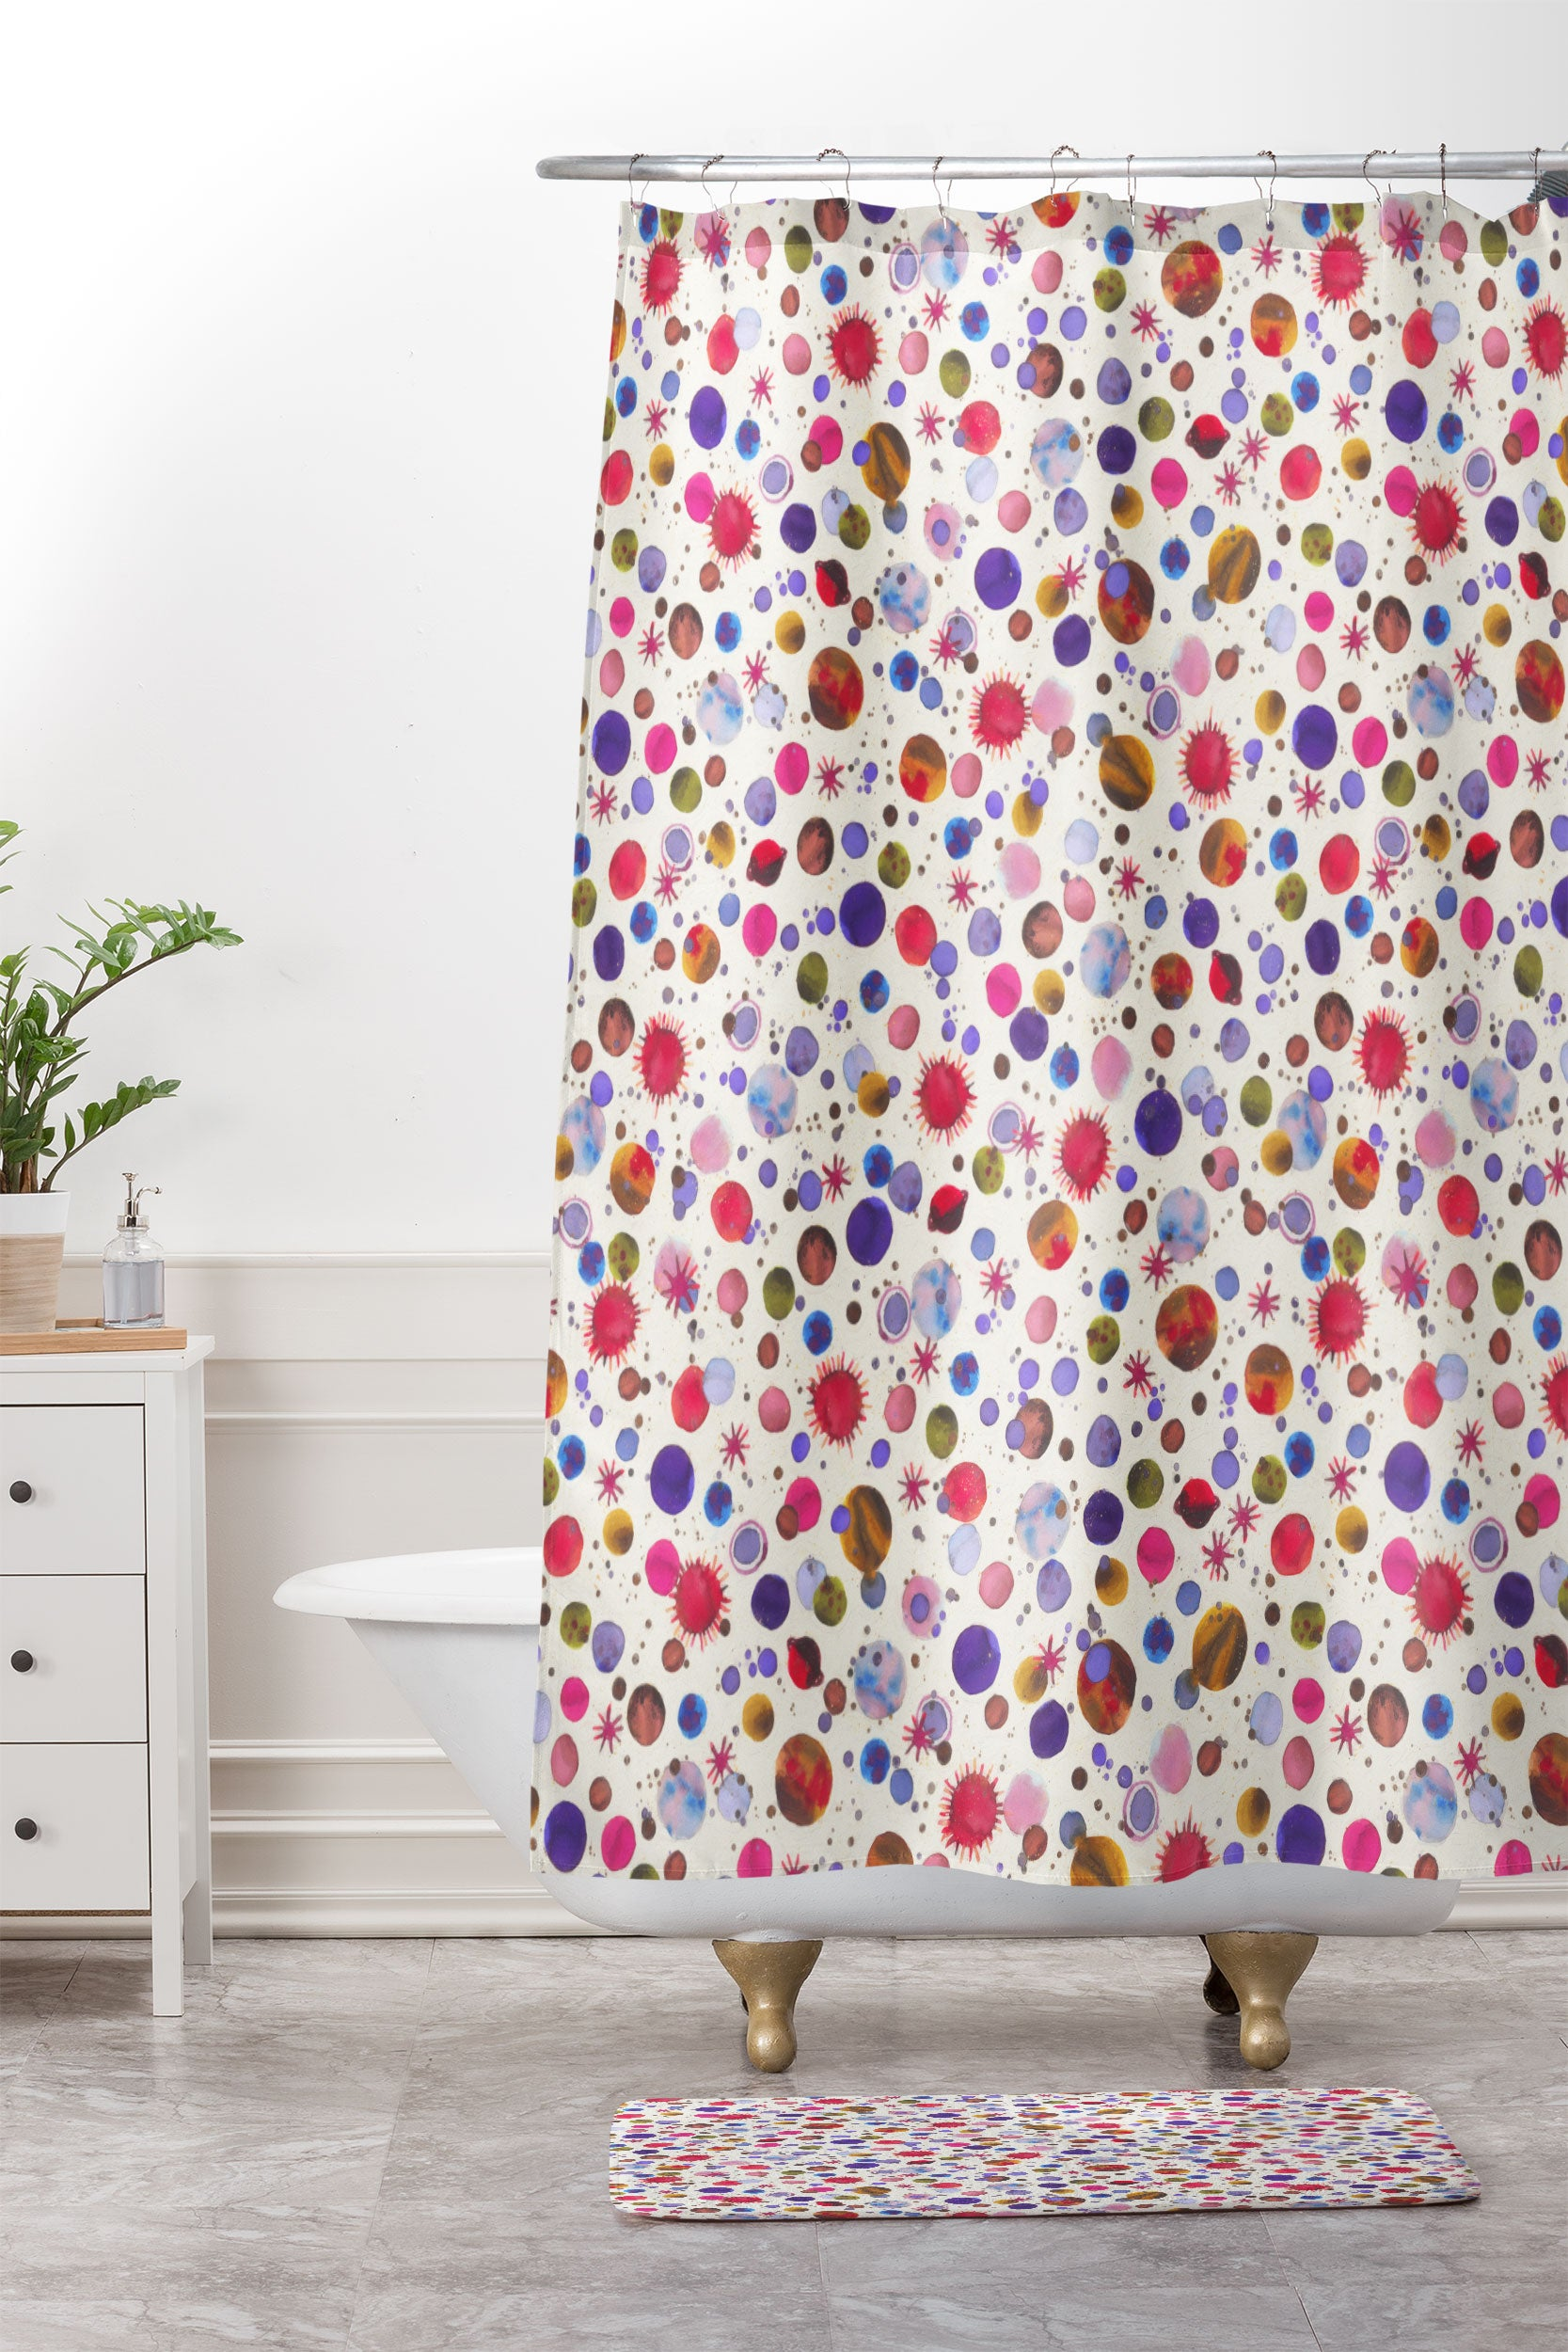 Ninola Design Cosmic Galaxy Constellation Dots Planets Shower Curtain And Mat